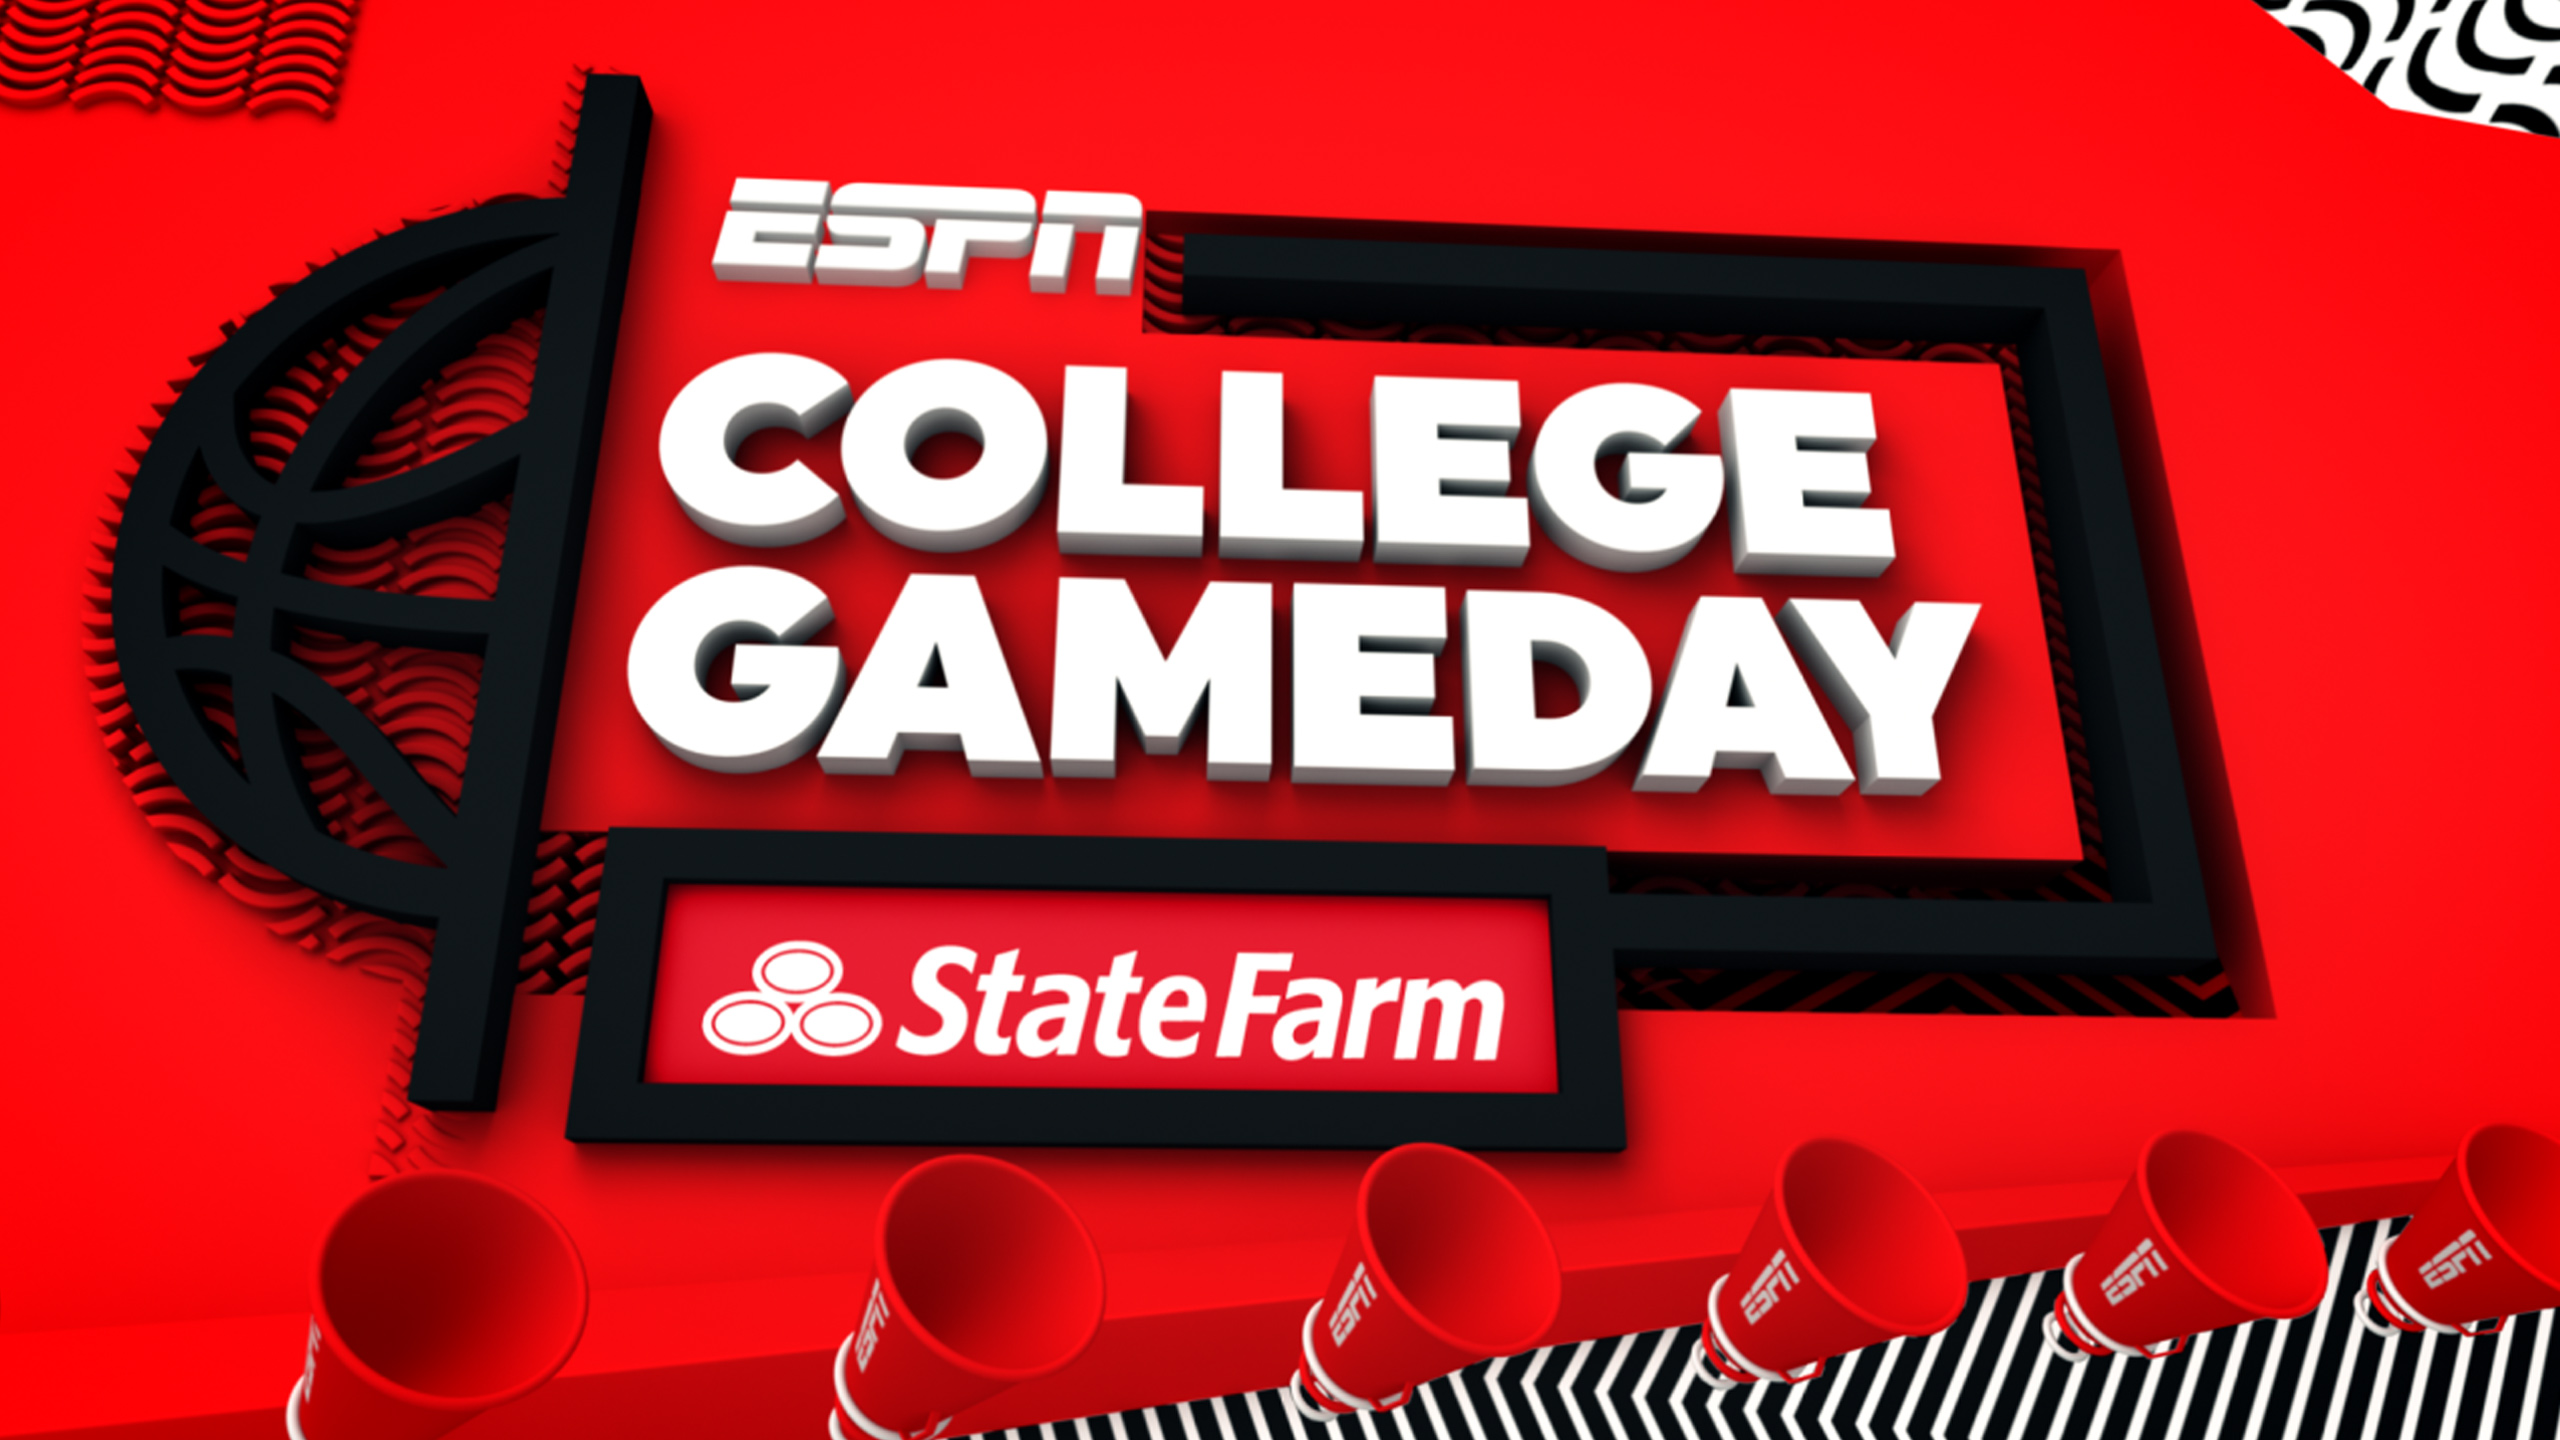 College GameDay covered by State Farm